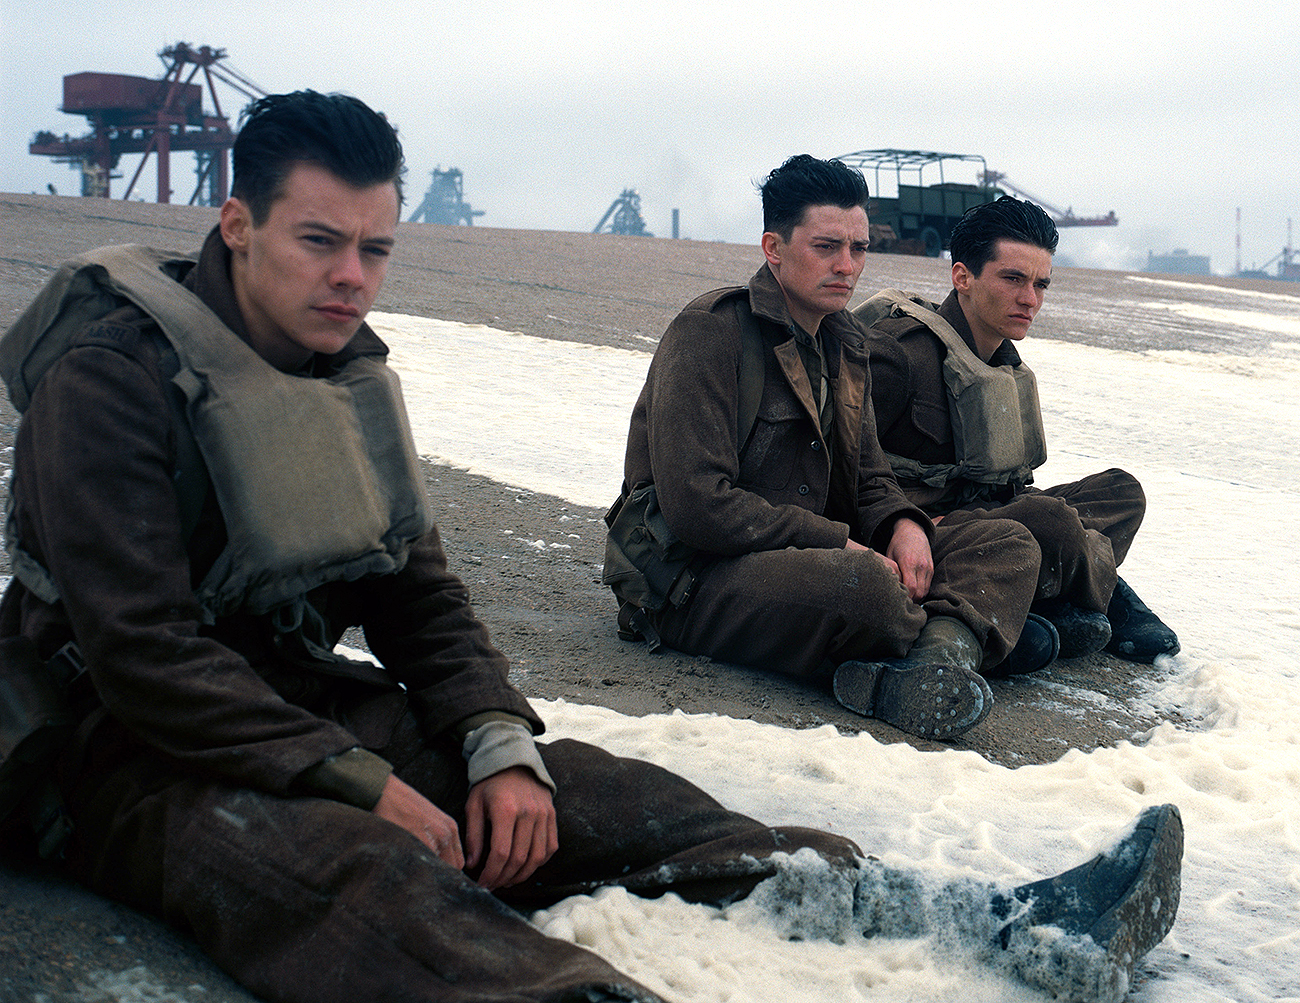 DUNKIRK, l-r: Harry Styles, Aneurin Barnard, Fionn Whitehead, 2017. ©Warner Bros. Pictures/courtesy